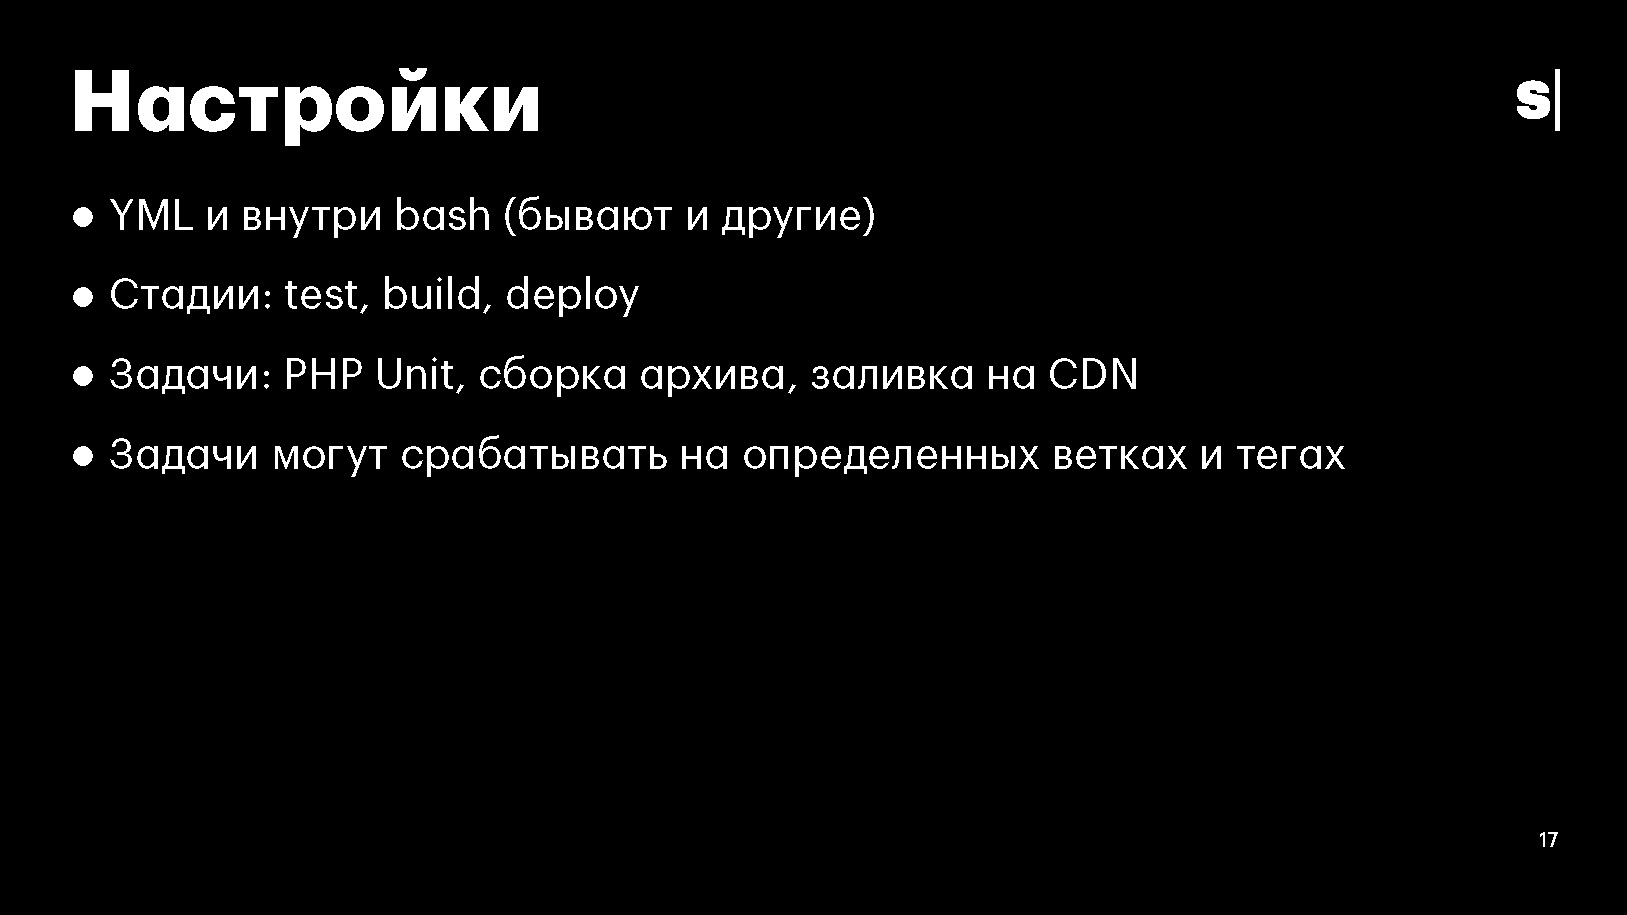 Использование CI-CD в WordPress разработке_Страница_17